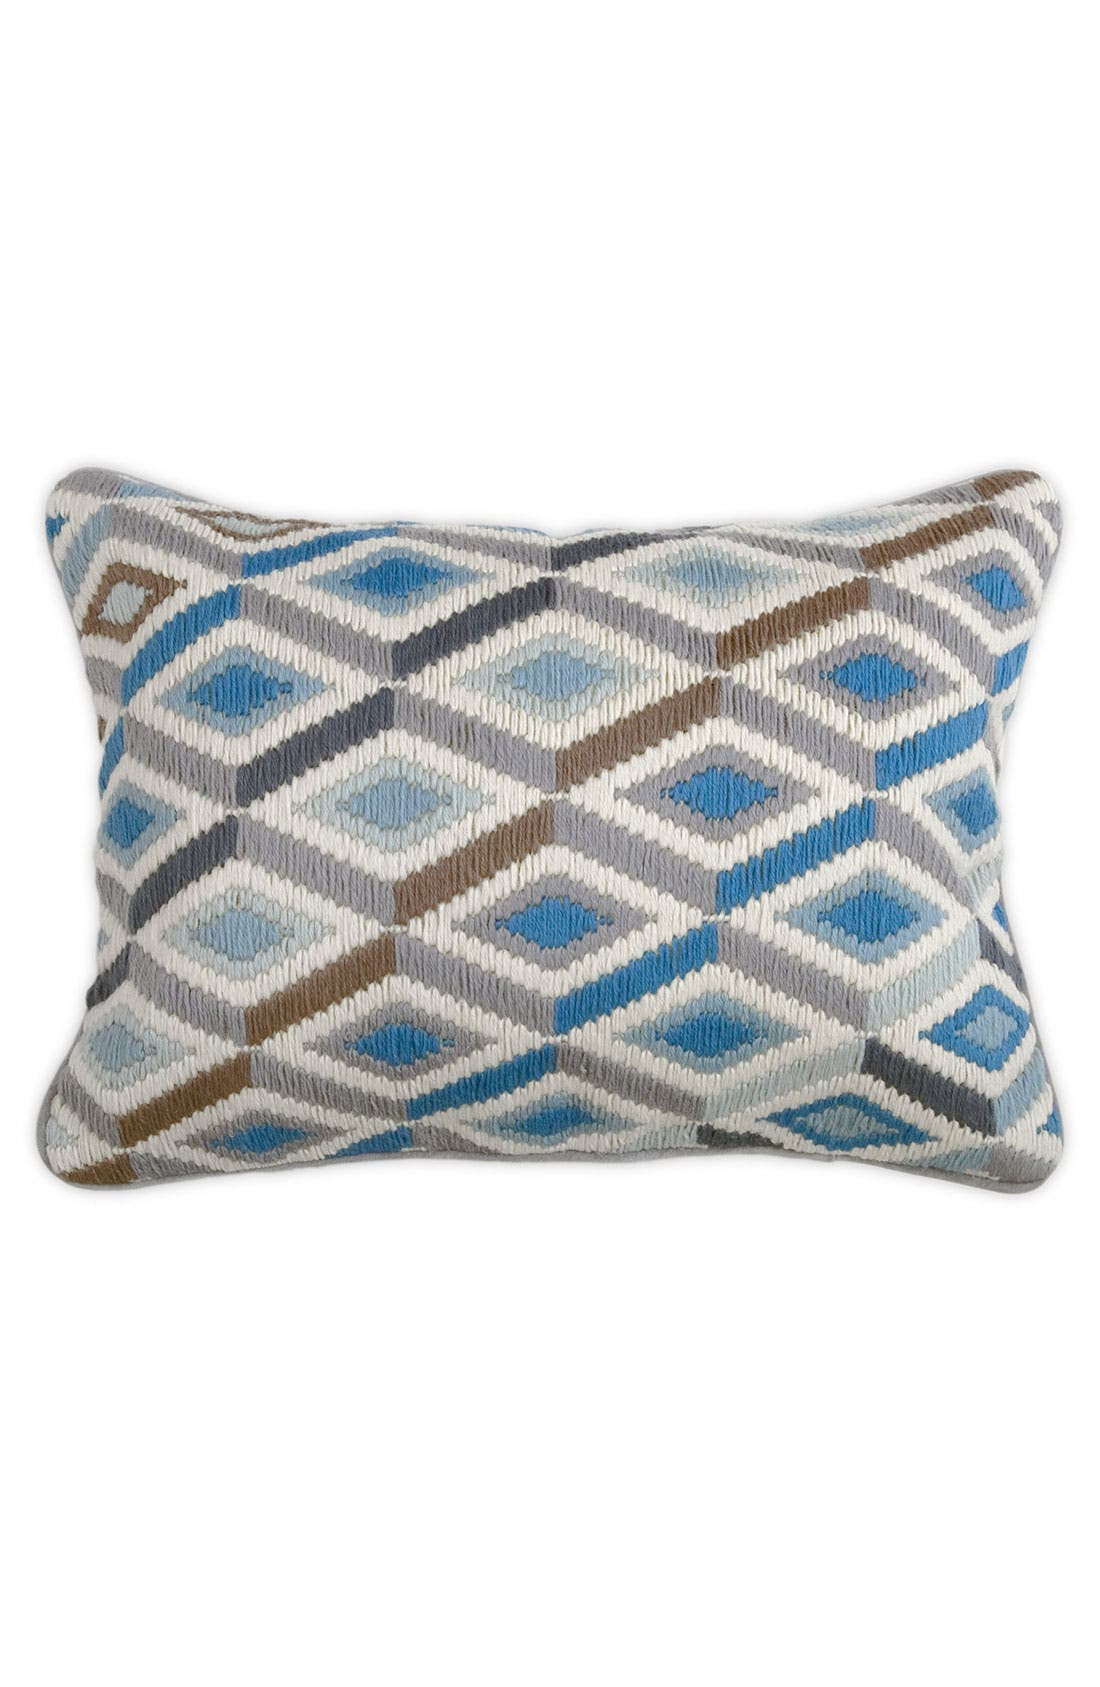 'Diamonds' Pillow,                         Main,                         color, Grey/Green